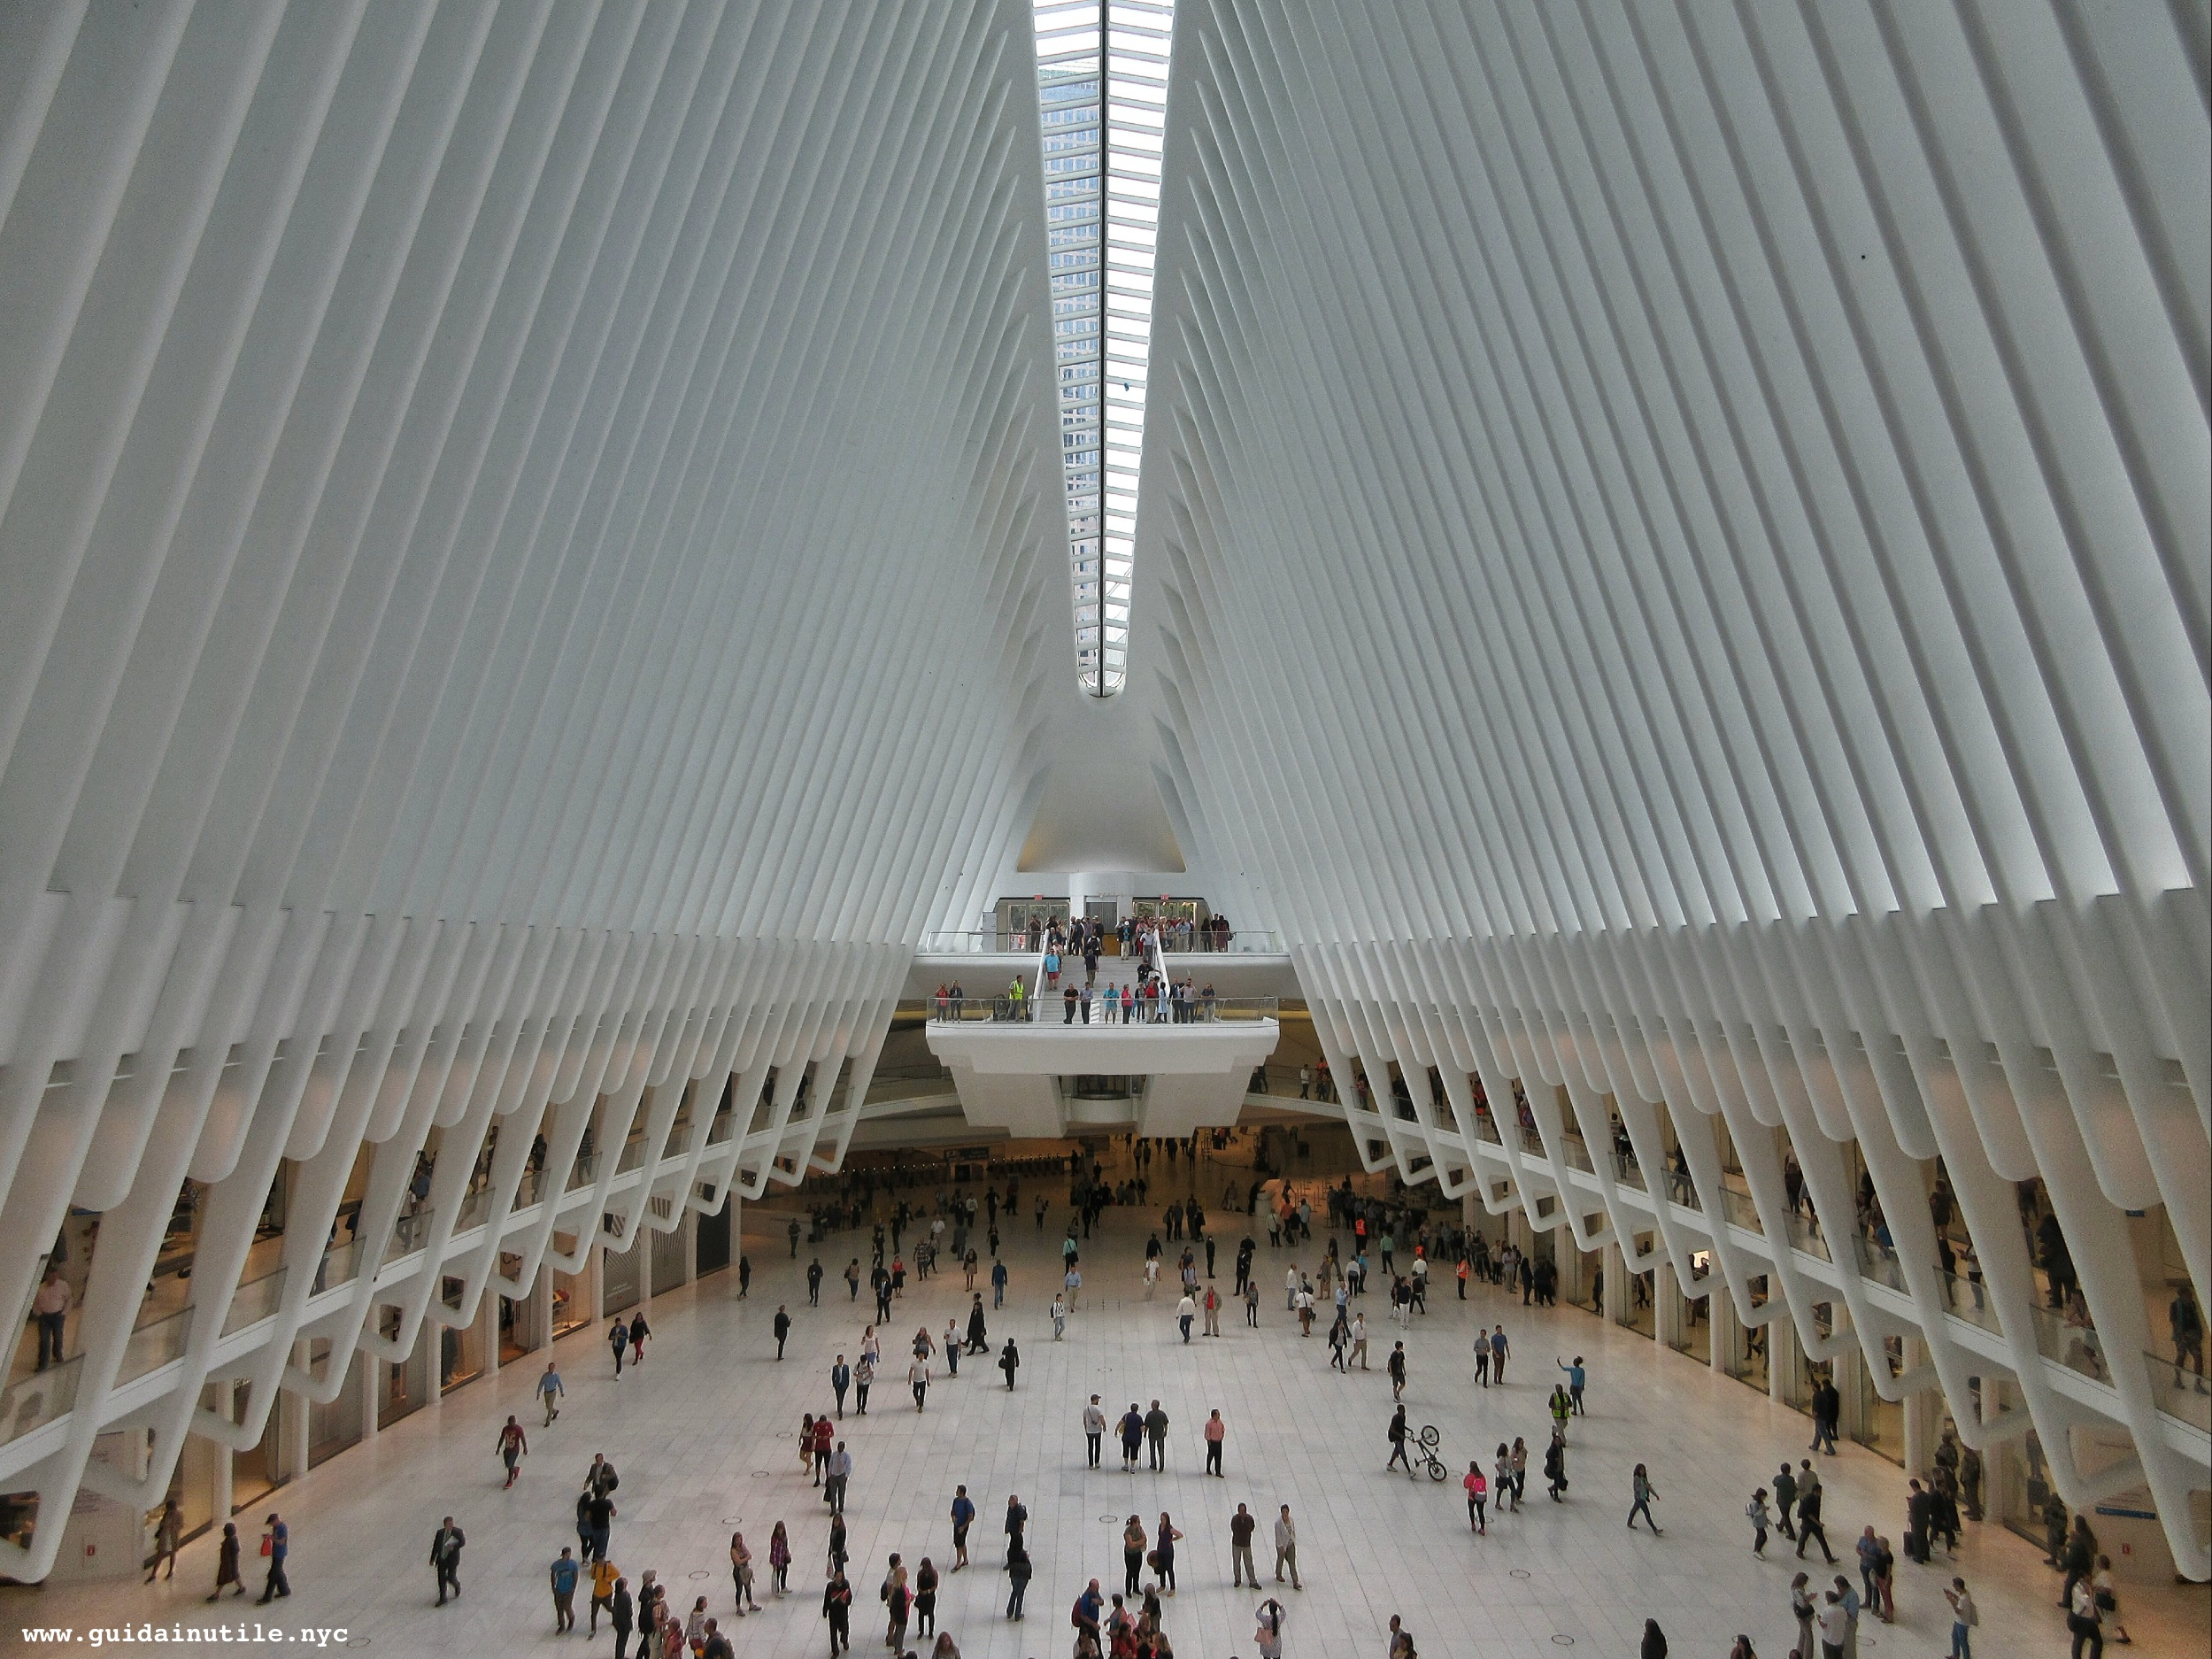 Oculus, WTC hub, World Trade Center, New York, Manhattan, New York City, Guida Inutile New York